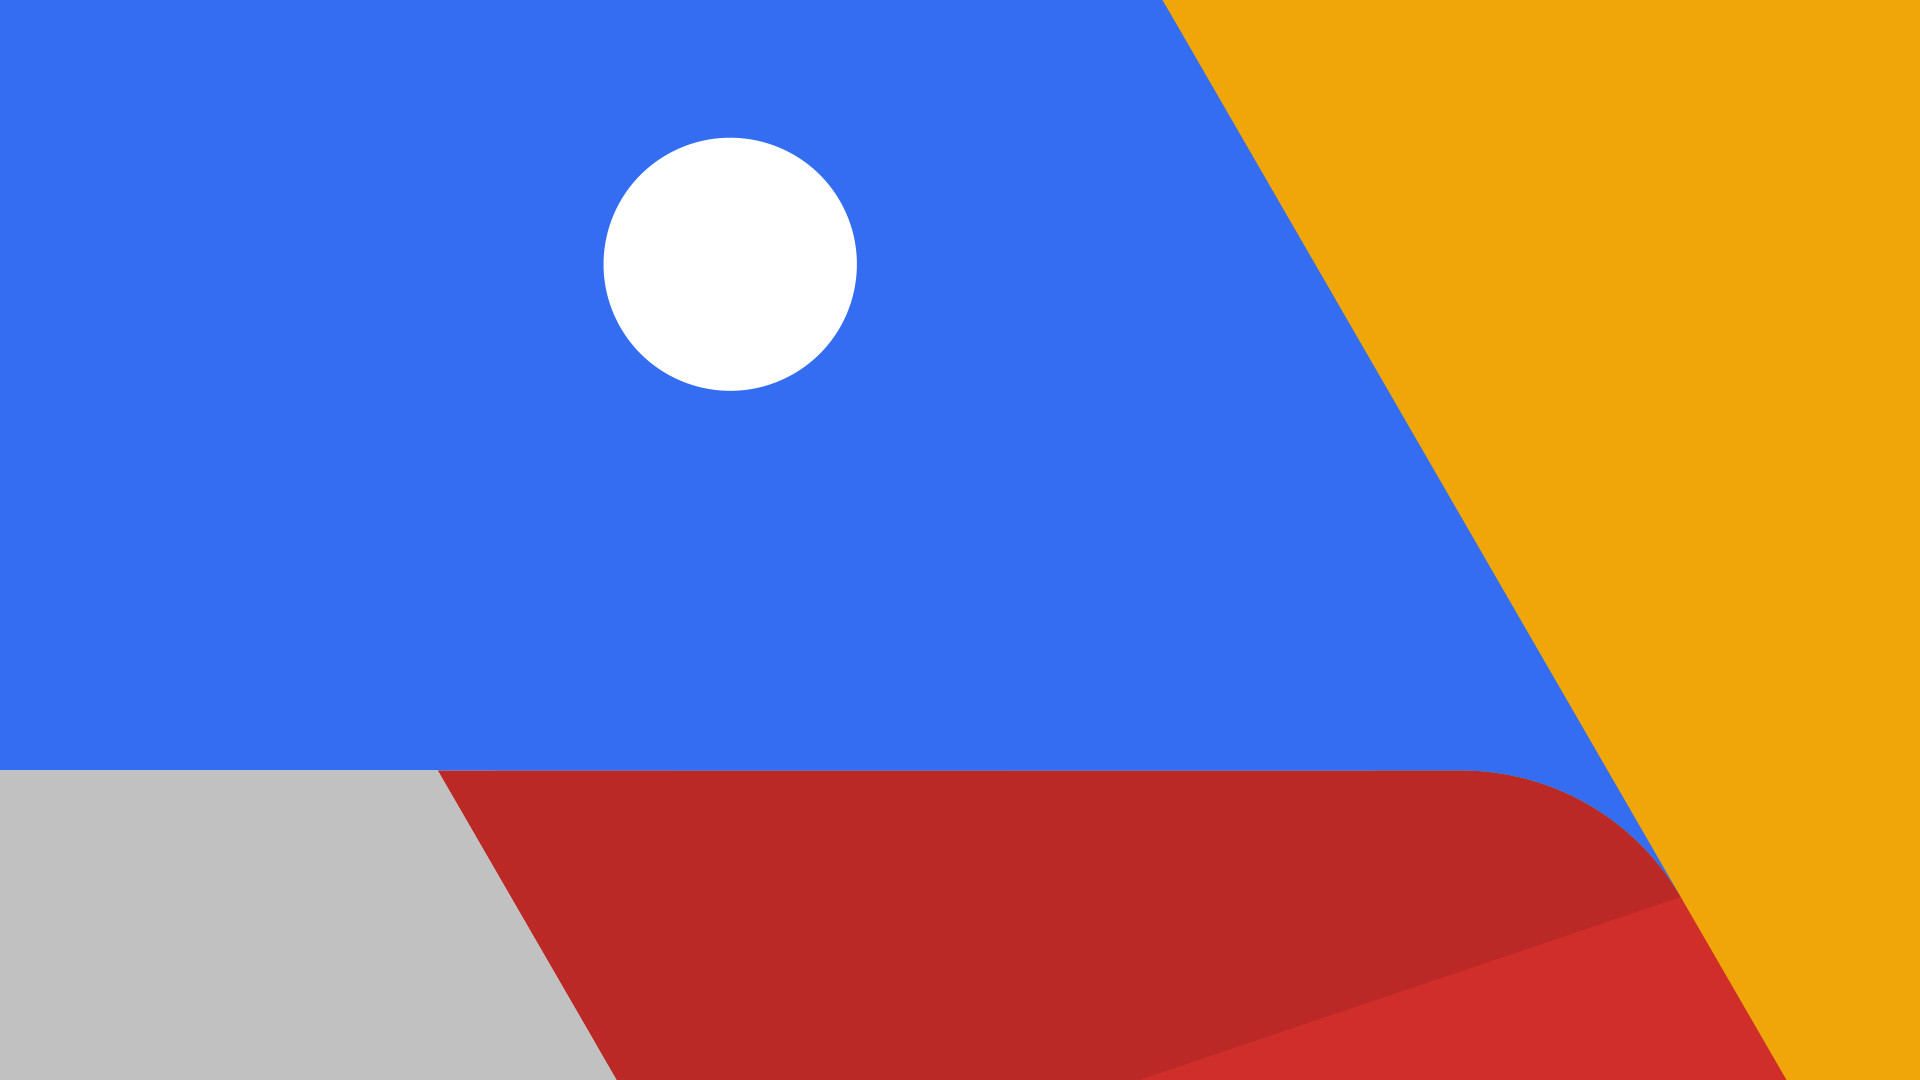 google backgrounds for desktop 52 images